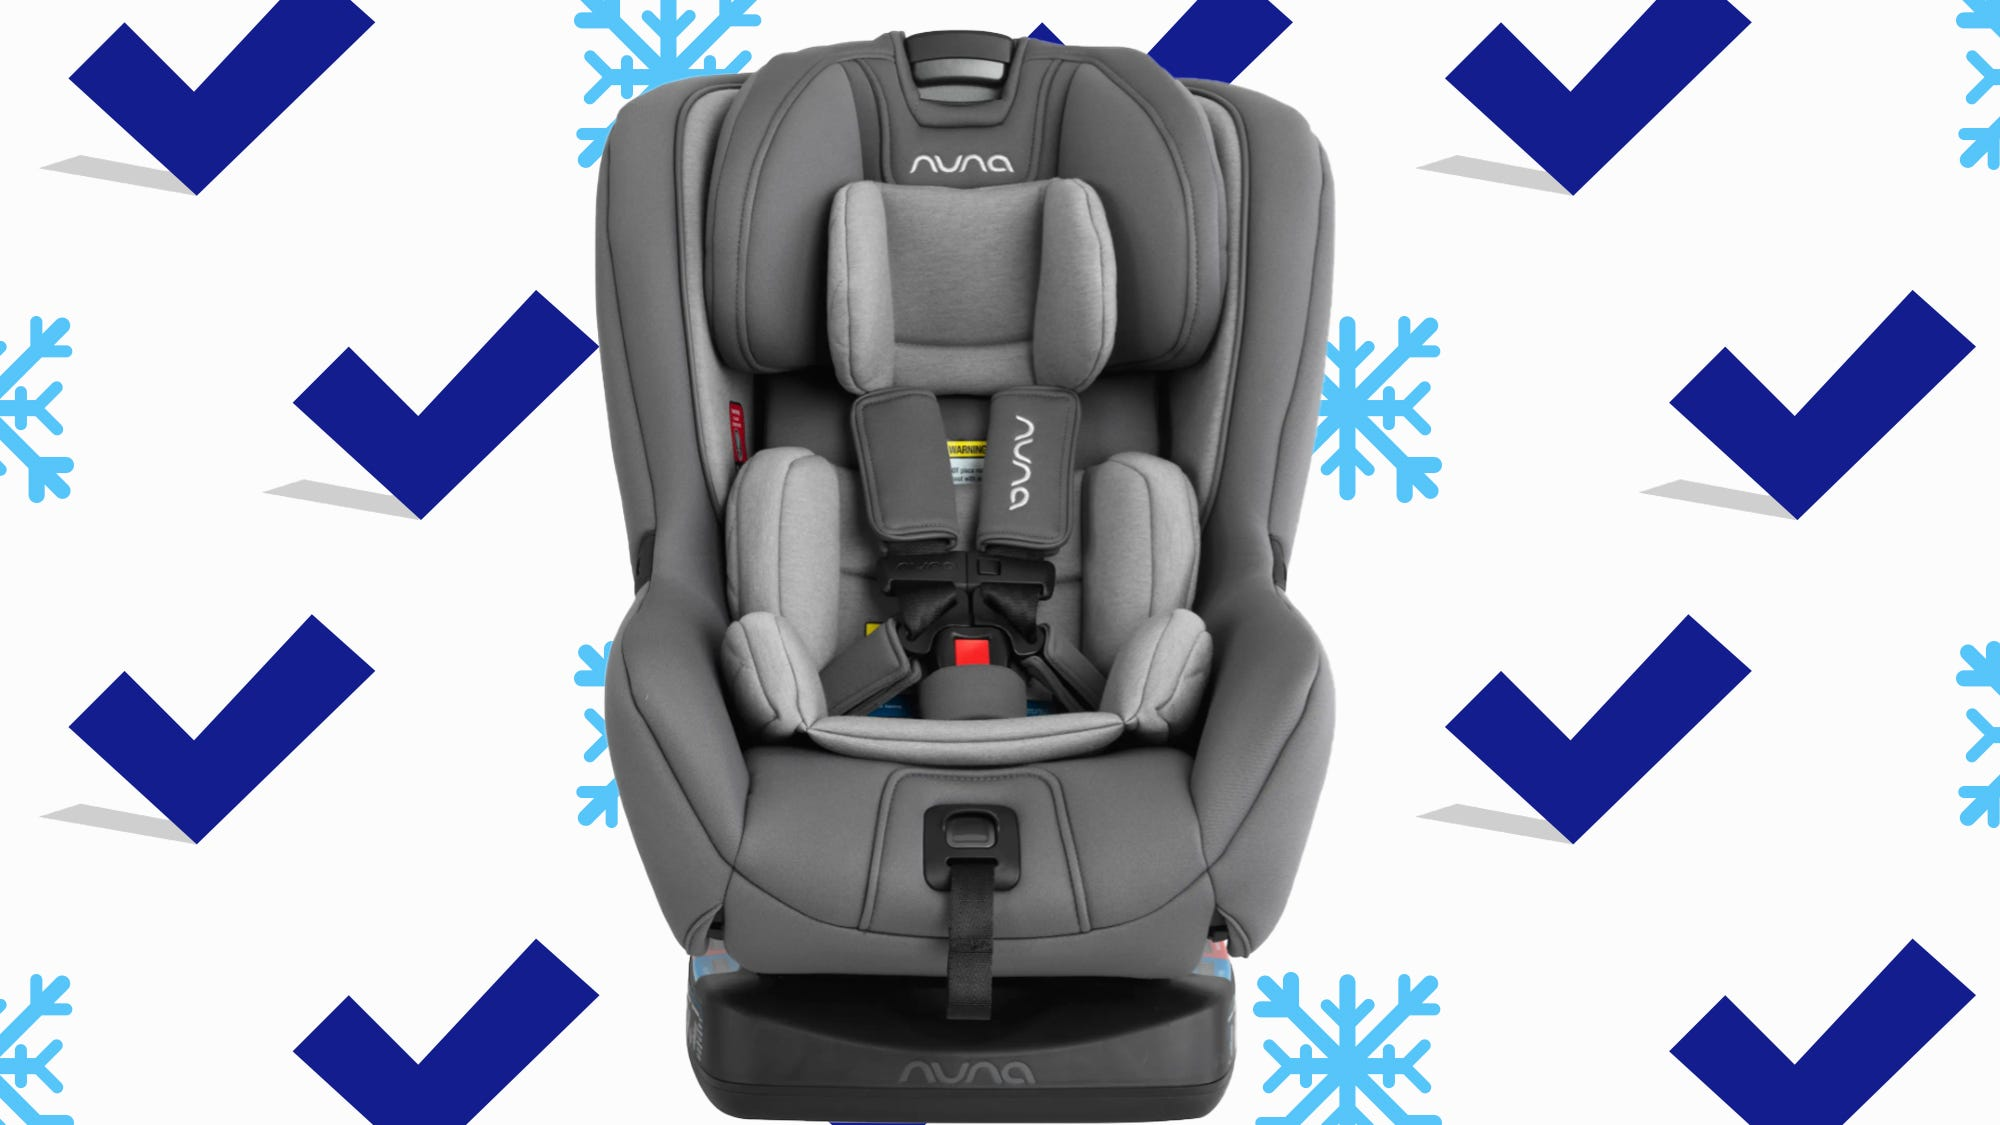 Parents are obsessed with this Nuna RAVA car seat—and it's finally back on sale